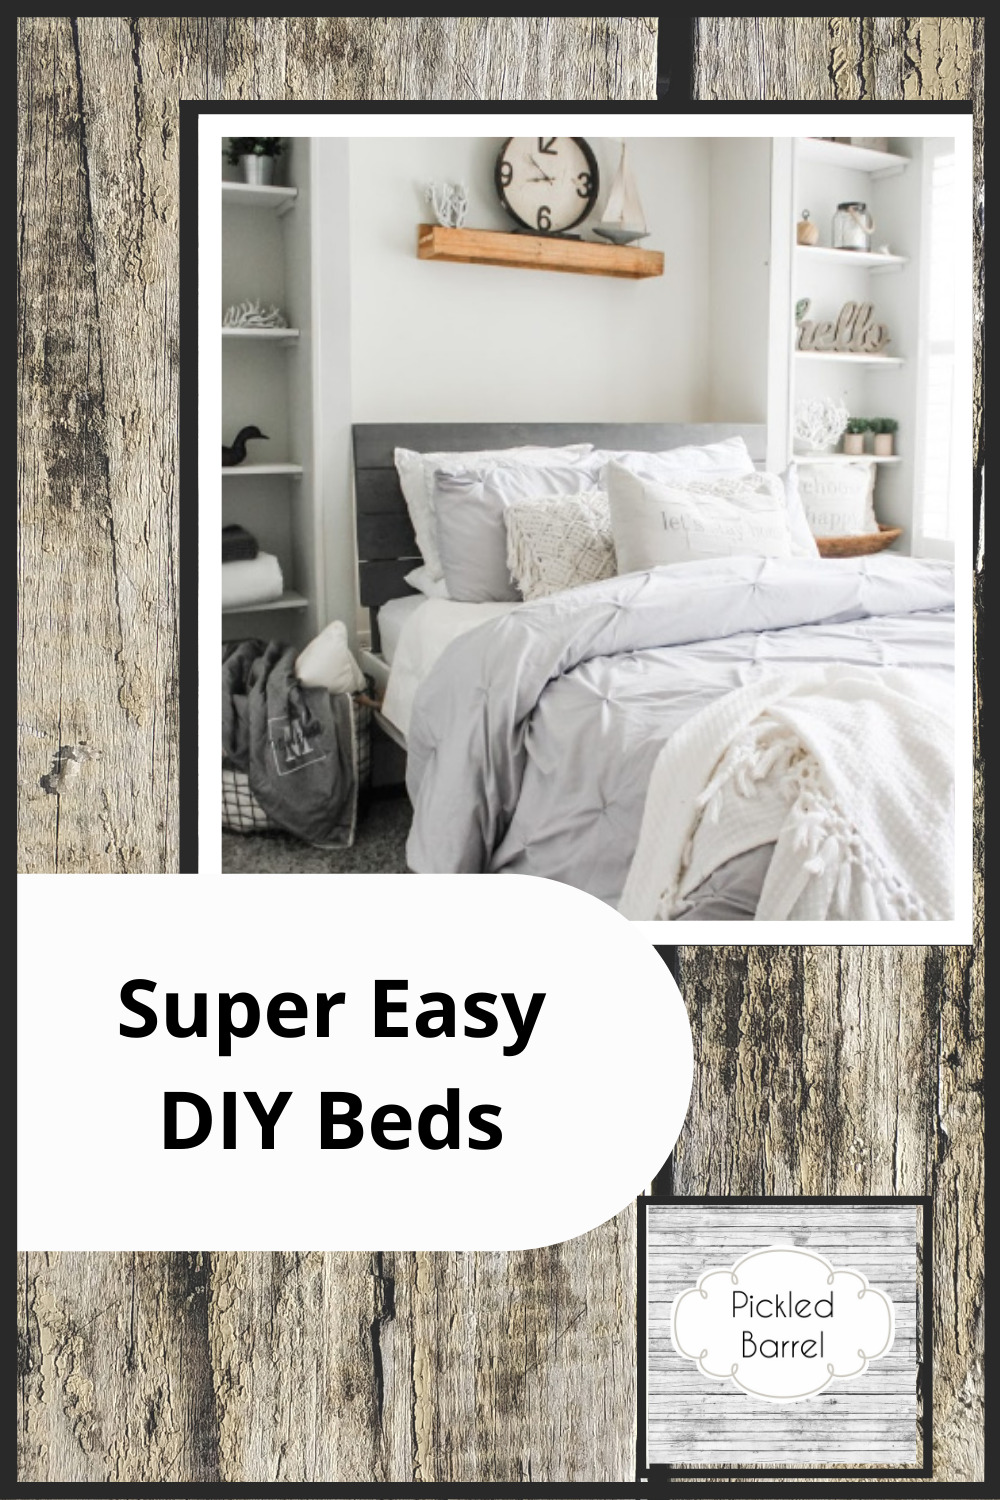 Want a new bed but don't want to spend a fortune? Pickledbarrel.com can help. Read on to learn about Easy DIY beds you can make in a day. Fast and affordable. Who doesn't like that?